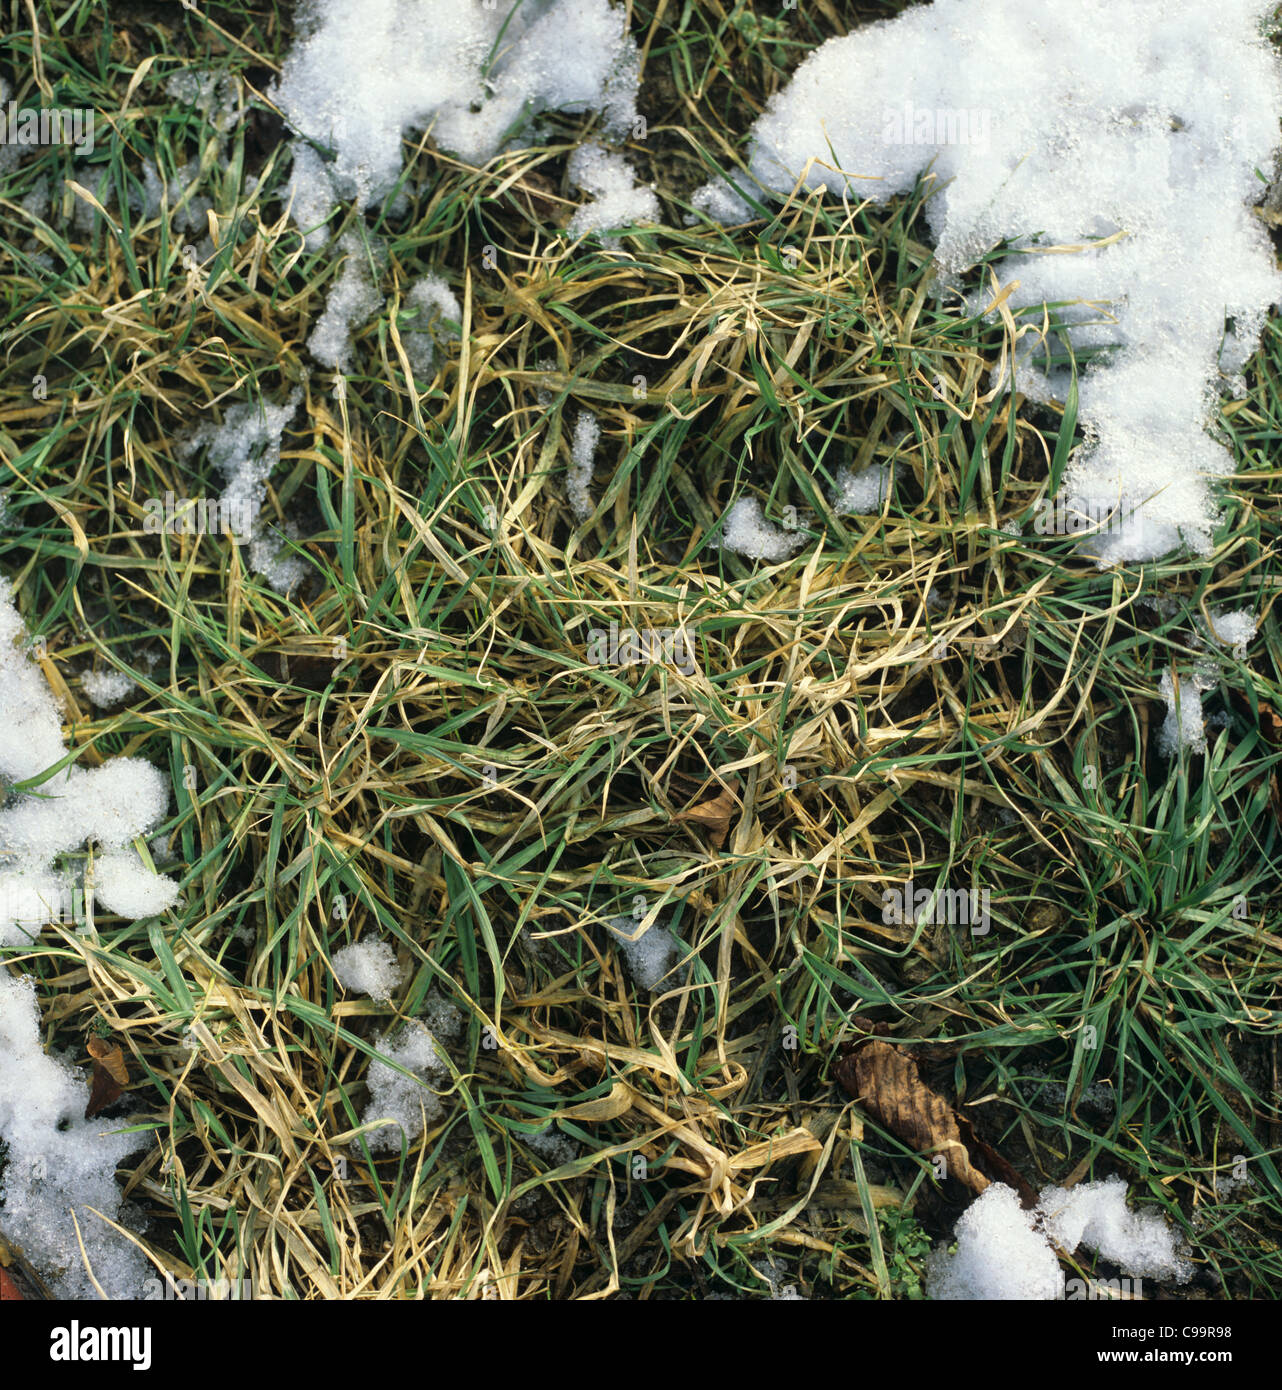 Receding snow cover leaving dead & dying overwintering barley crop - winter kill - Stock Image